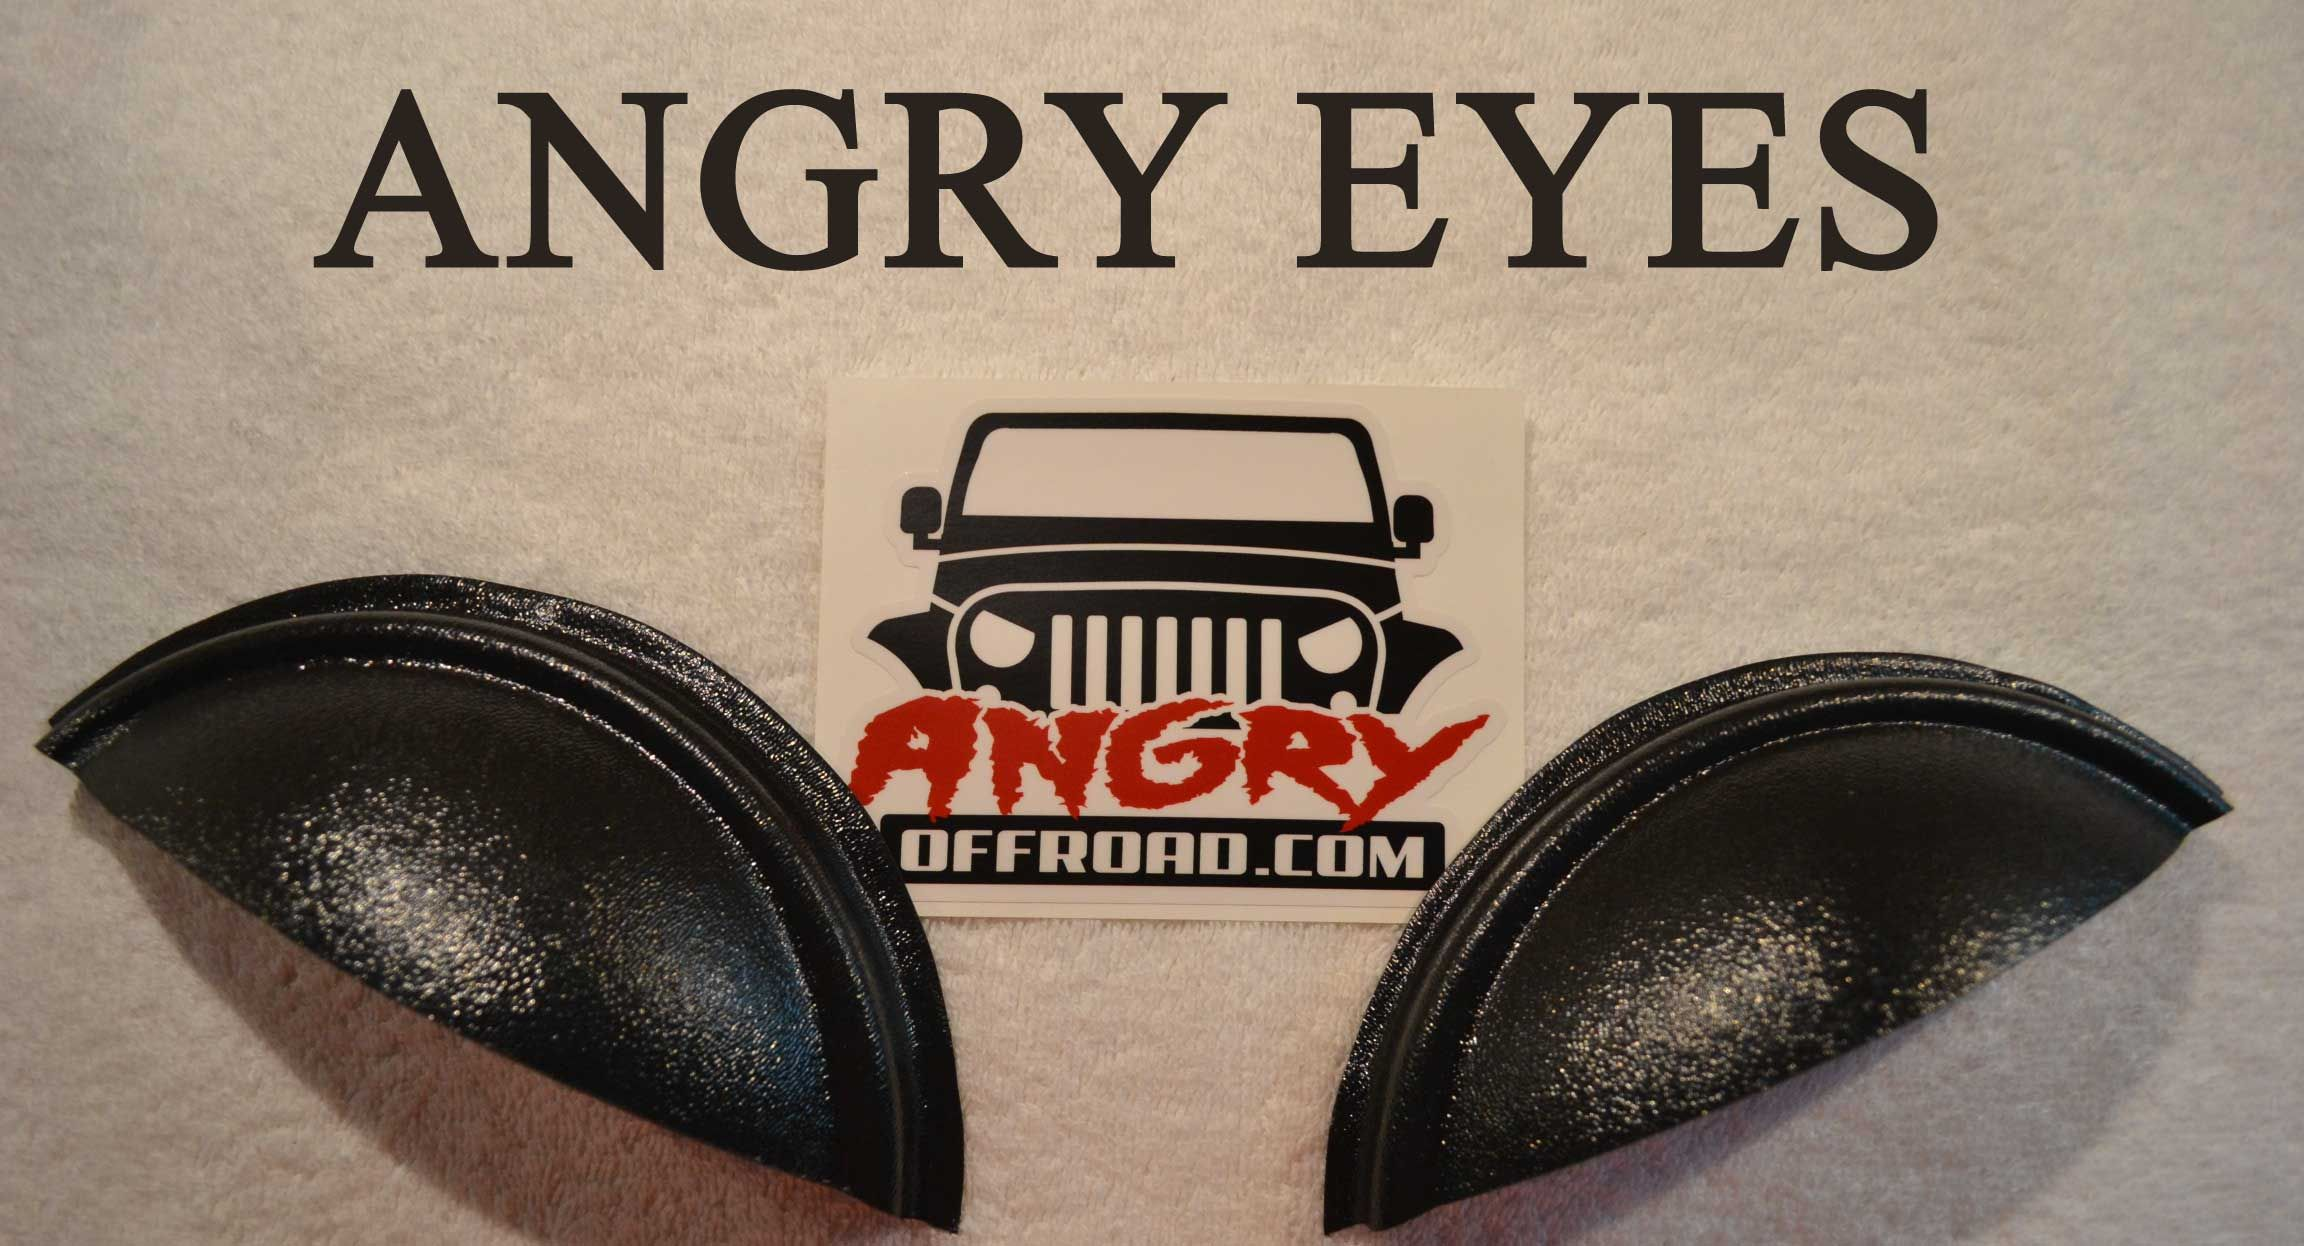 Angry Eyes Jeep Headlight Covers Angry Eyes Half Moon Headlight Covers Jeep Headlight Covers Jeep Ang Jeep Lover Jeep Wrangler Accessories Jeep Wrangler Tj